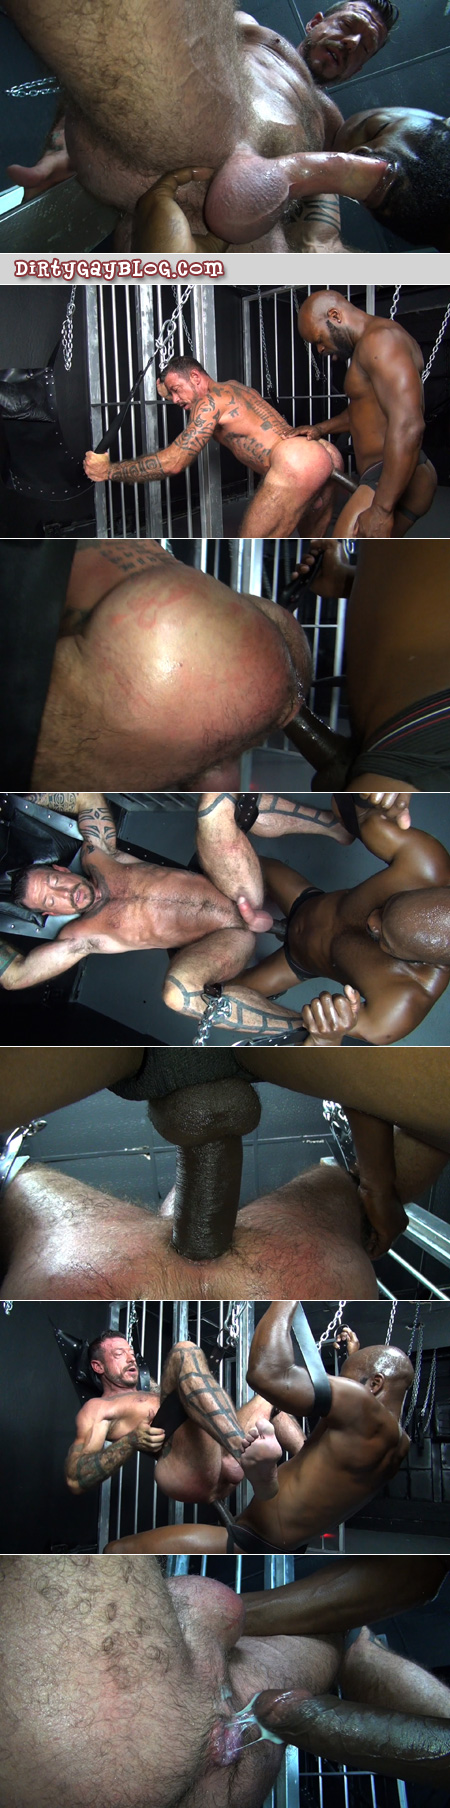 Tattooed muscle bear being fucked bareback in a sling by a black man with a huge penis.